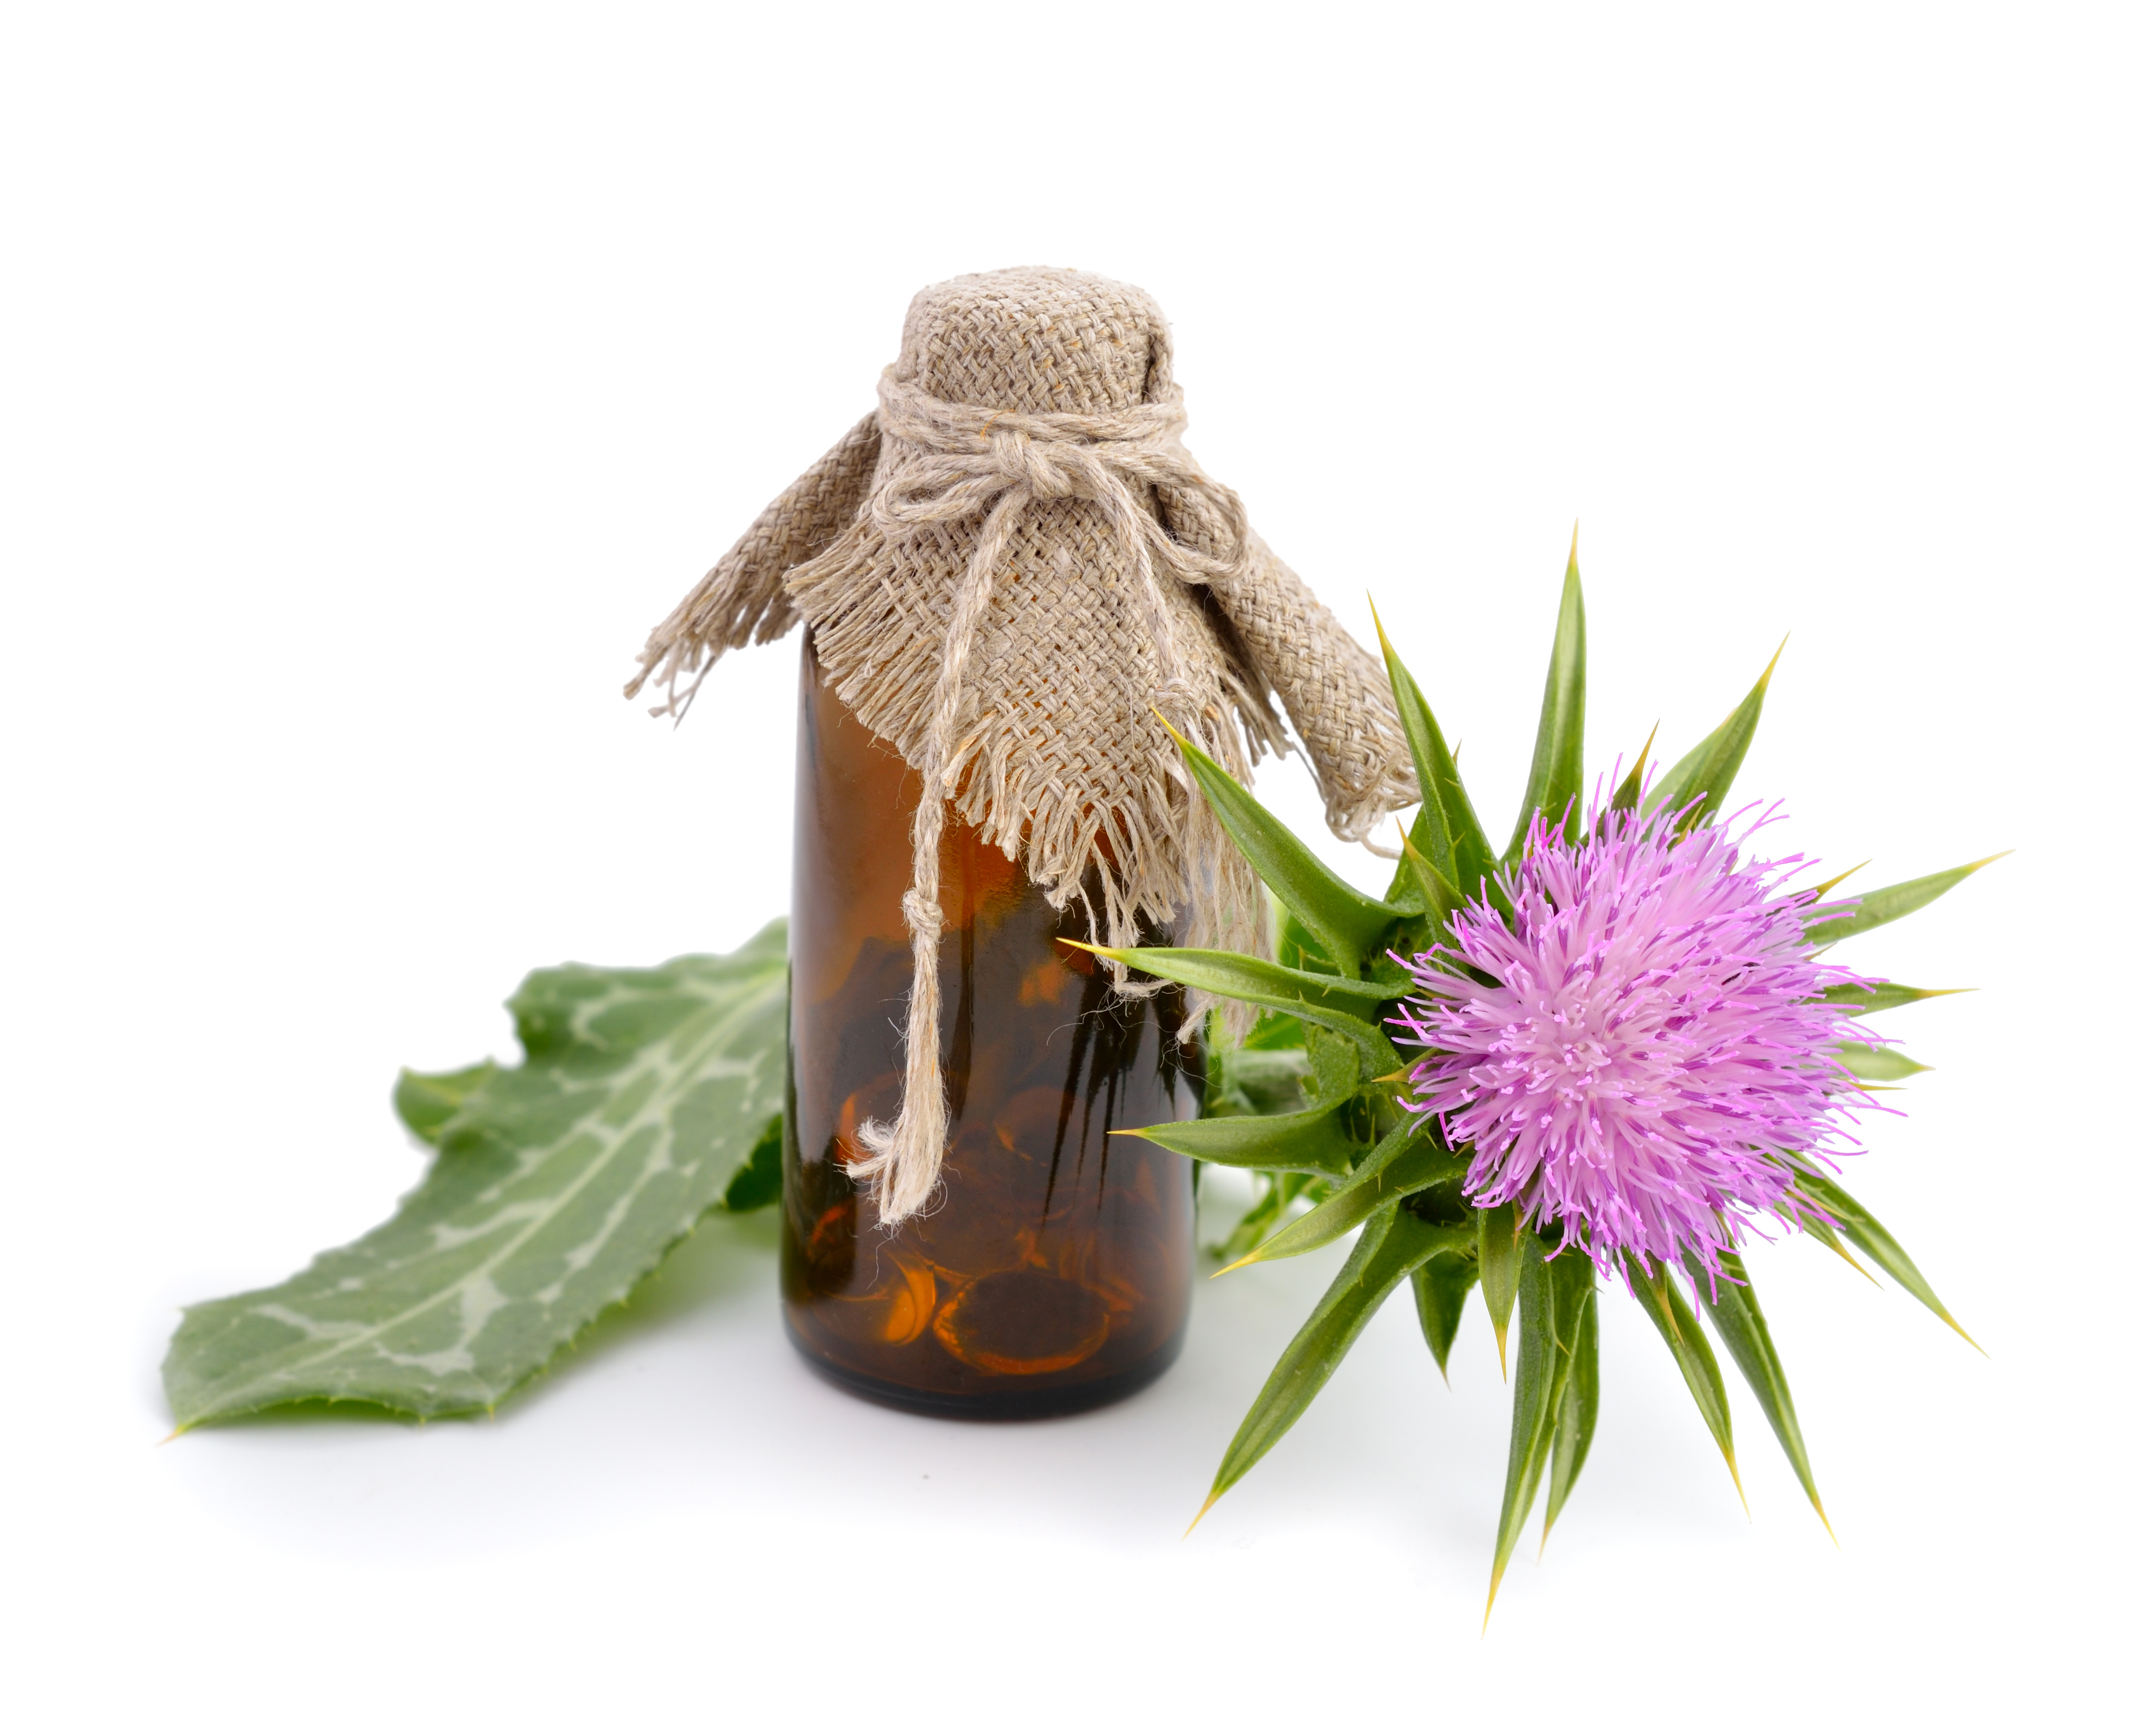 Silibinin from Milk Thistle Extract Halts Colon Cancer Stem Cells